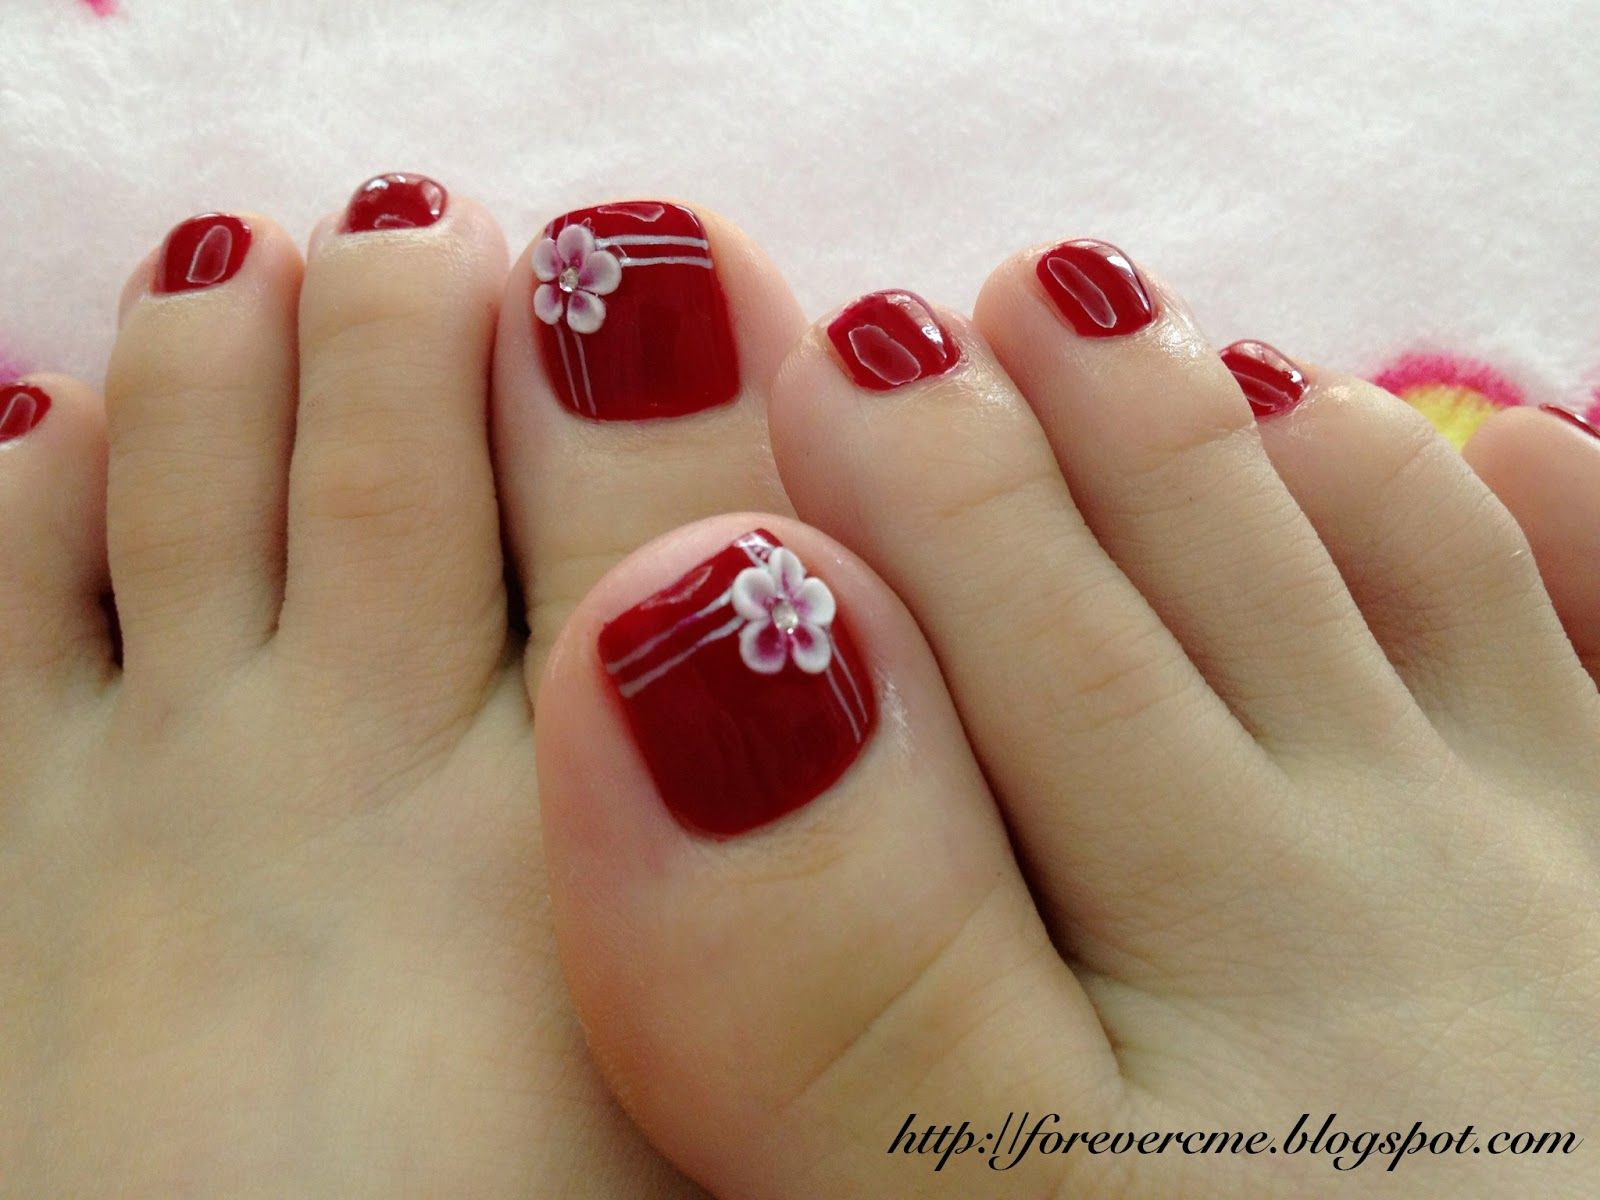 Comfortable Nail Polish Remover On Jeans Huge Best Gel Top Coat Nail Polish Square Gel Nail Polish Lifting Nail Polish Online Young Nail Art Tape Ideas GreenHow Much Is Nail Art 1000  Images About Toe Nail Art Designs On Pinterest | Pedicure ..